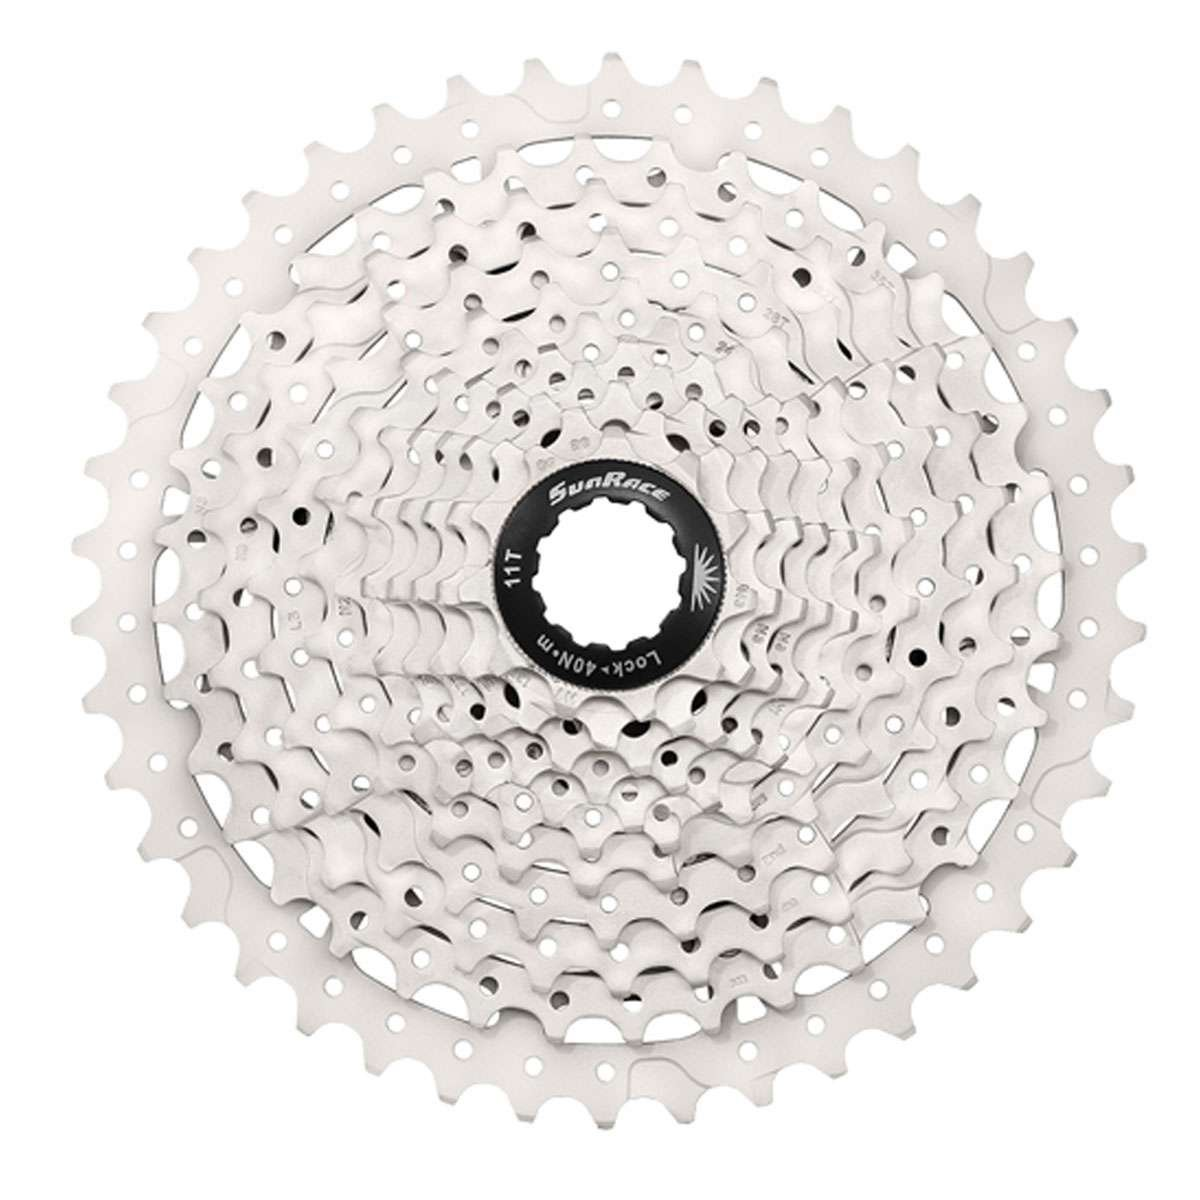 Cheap 11 34 9 Speed Cassette Find Deals On Sproket 8 Shimano Hg 31 34t Get Quotations Sunrace Csms1 10 Bicycle Csms1tav0xs0